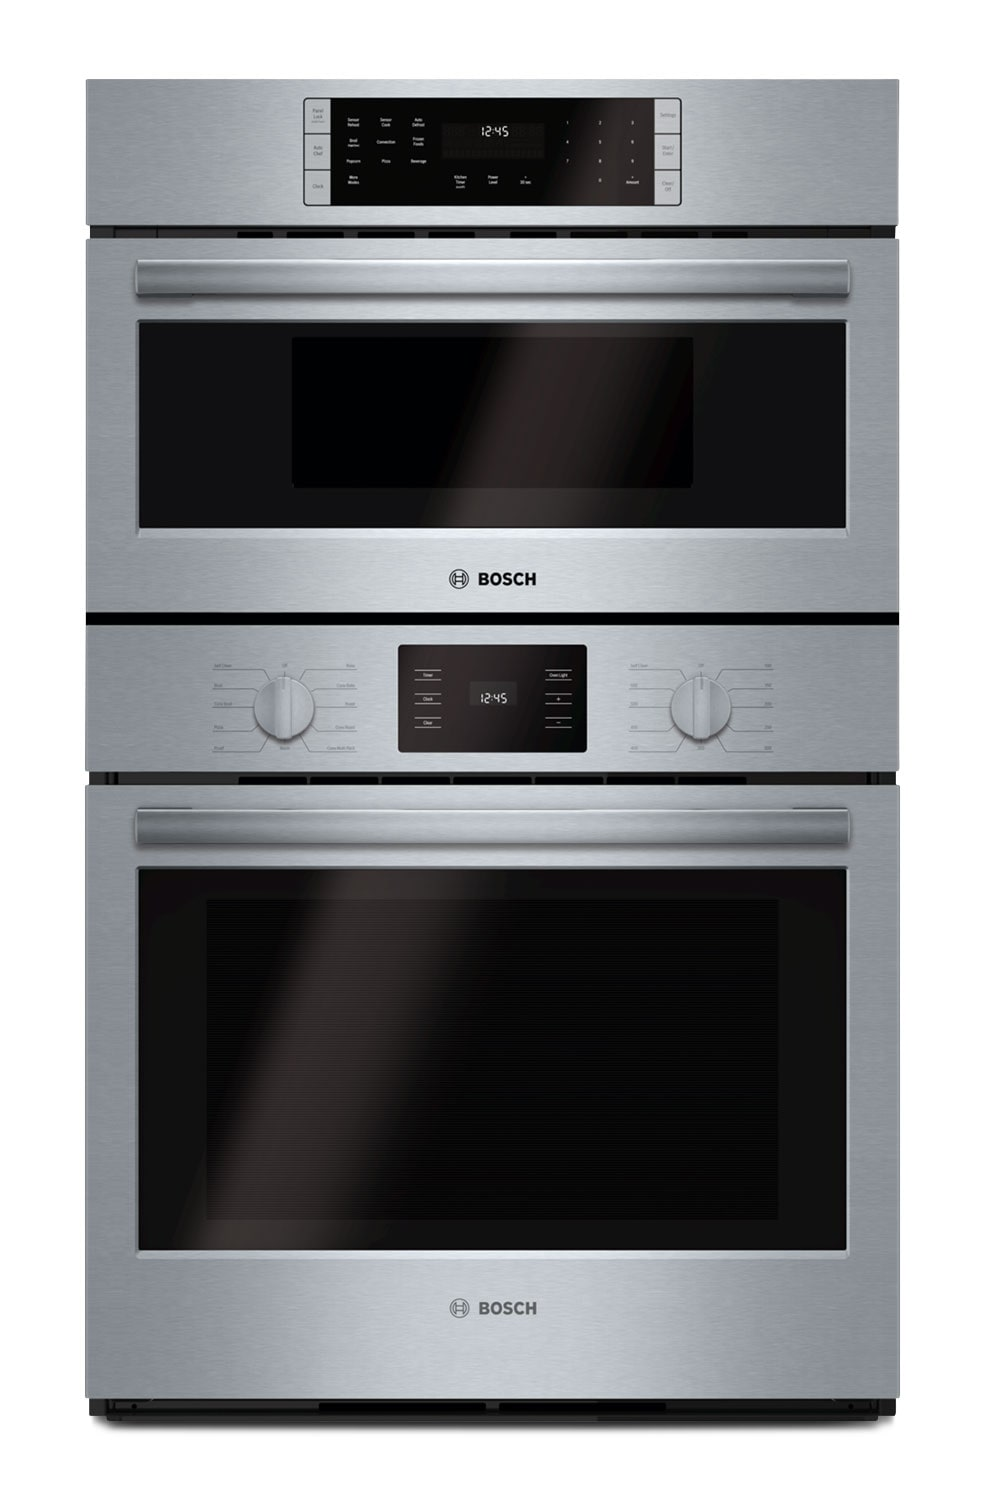 Cooking Products - Bosch 500 Series 4.6 Cu. Ft. Combination Wall Oven – HBL5751UC